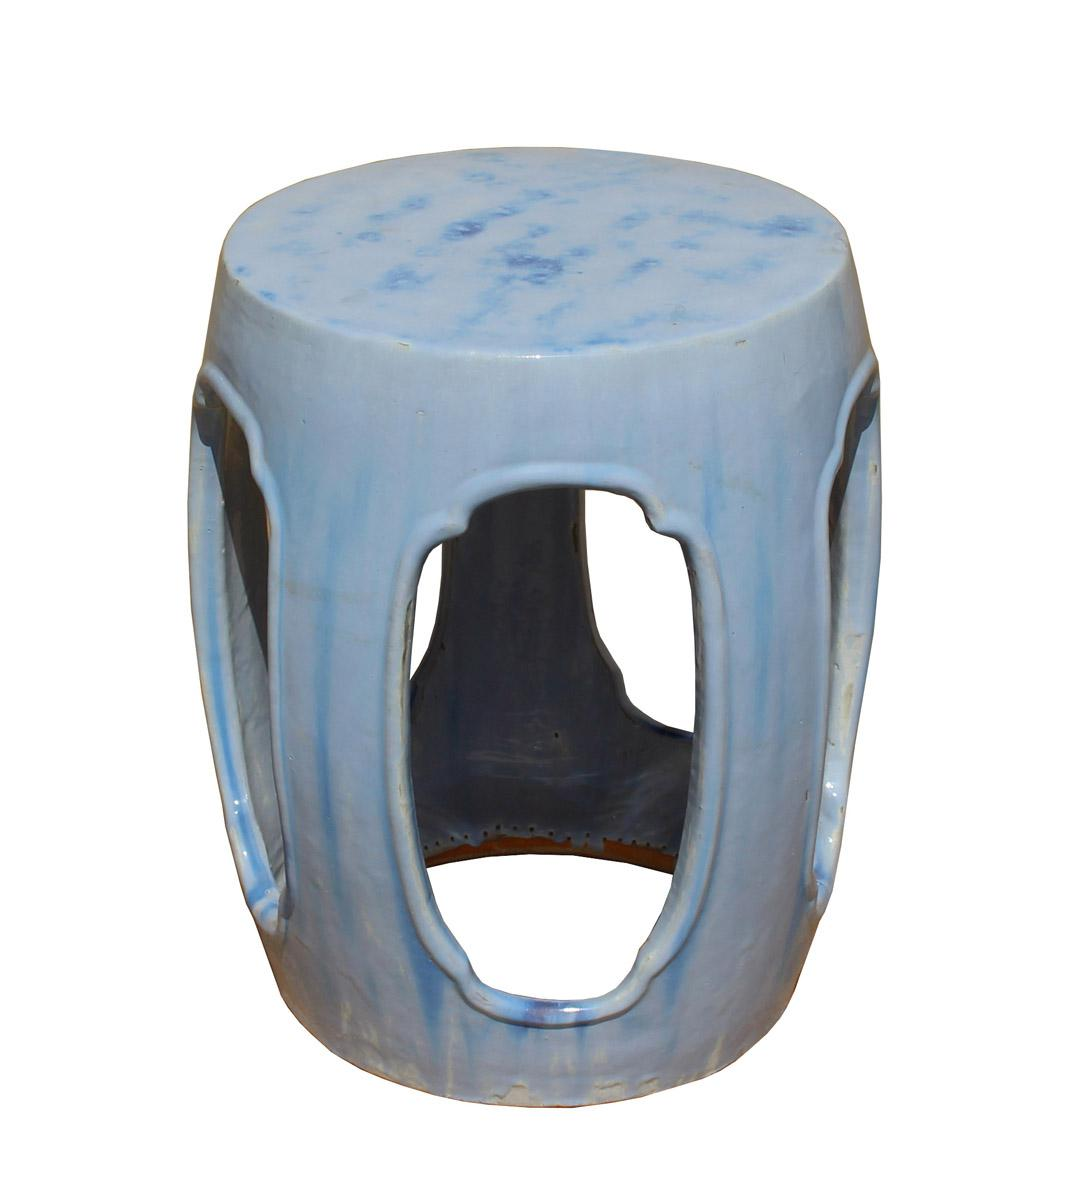 Chinese Round Barrel Light Blue Ceramic Clay Garden Stool - Image 3 of 7  sc 1 st  Chairish & Chinese Round Barrel Light Blue Ceramic Clay Garden Stool | Chairish islam-shia.org